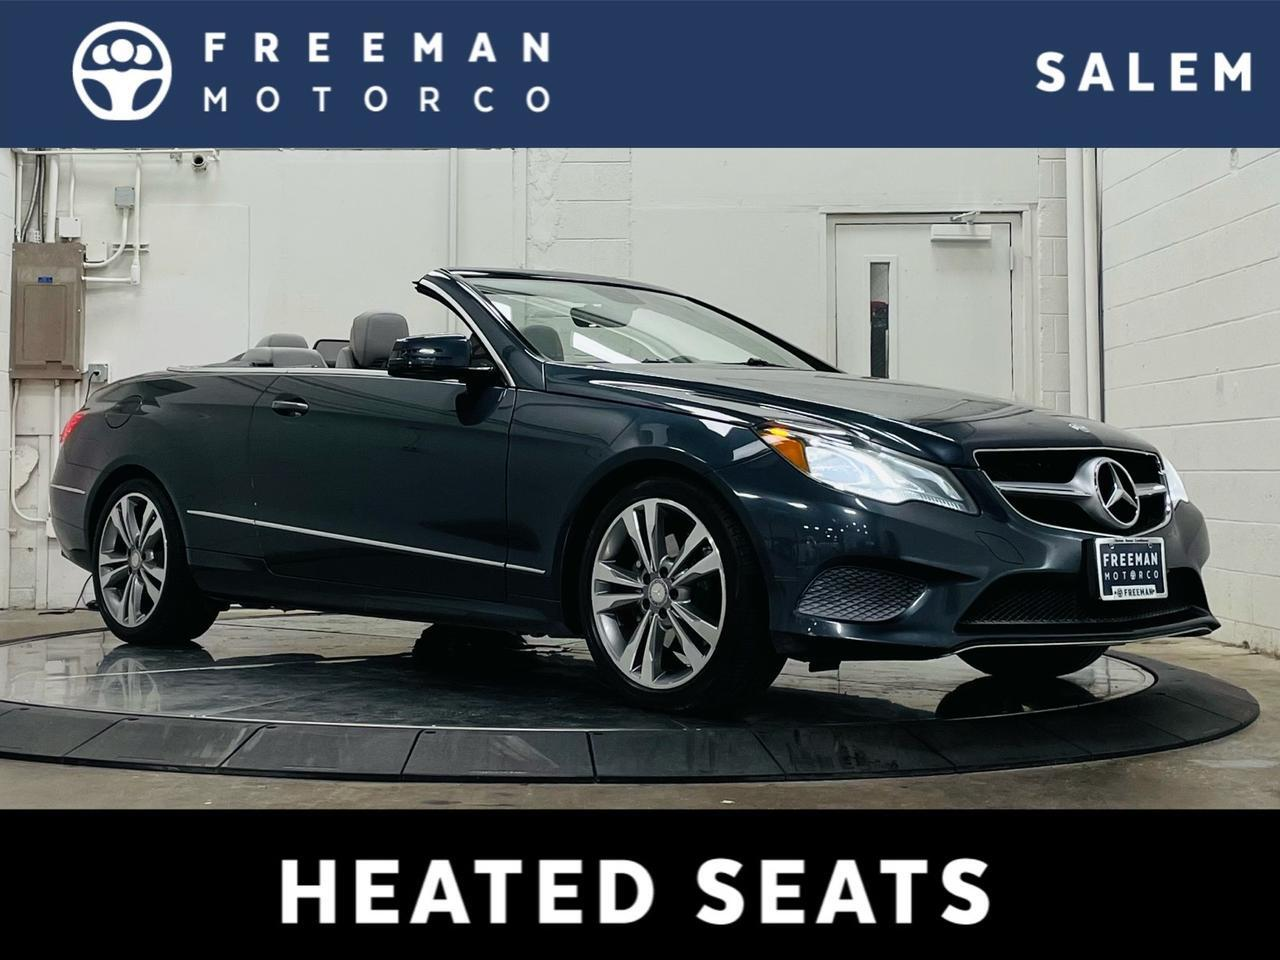 2014 Mercedes-Benz E 350 Cabriolet Backup Camera Heated Seats Salem OR